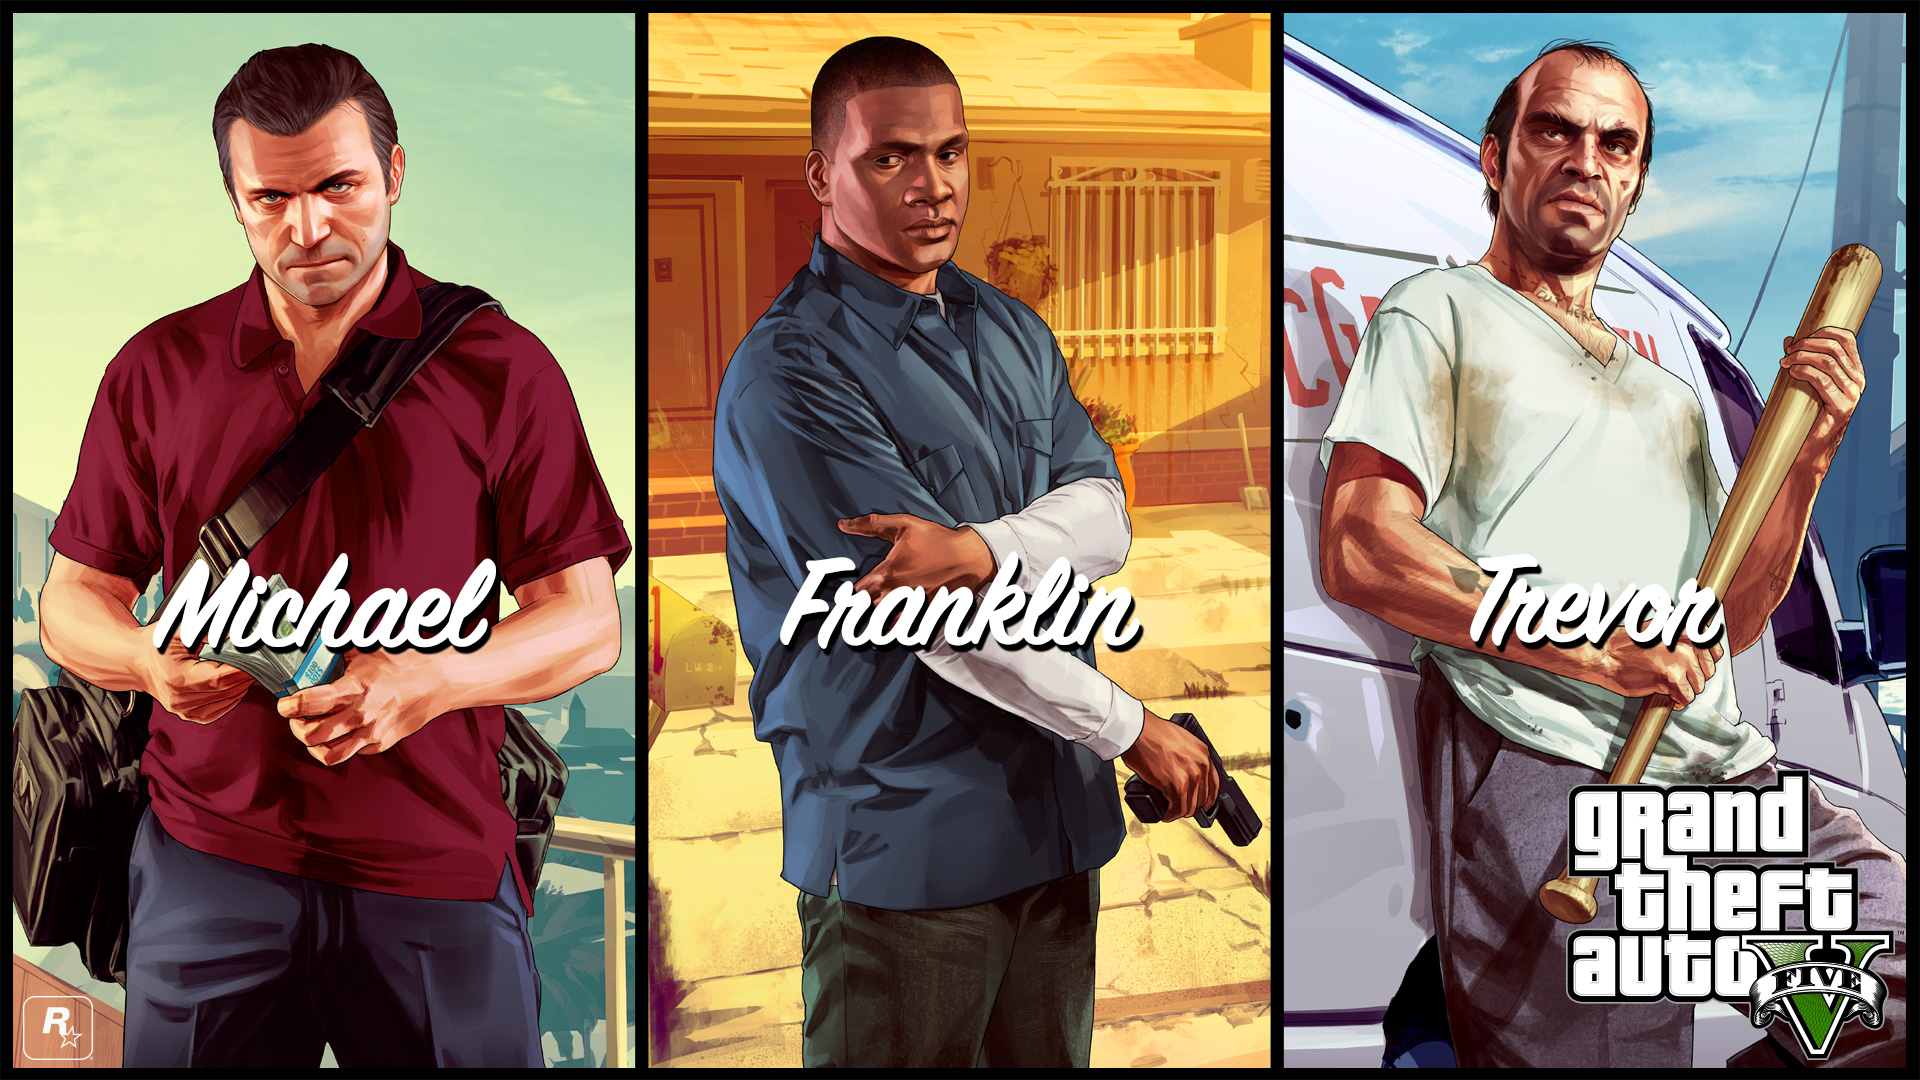 michael franklin trevor - GTA5france.com